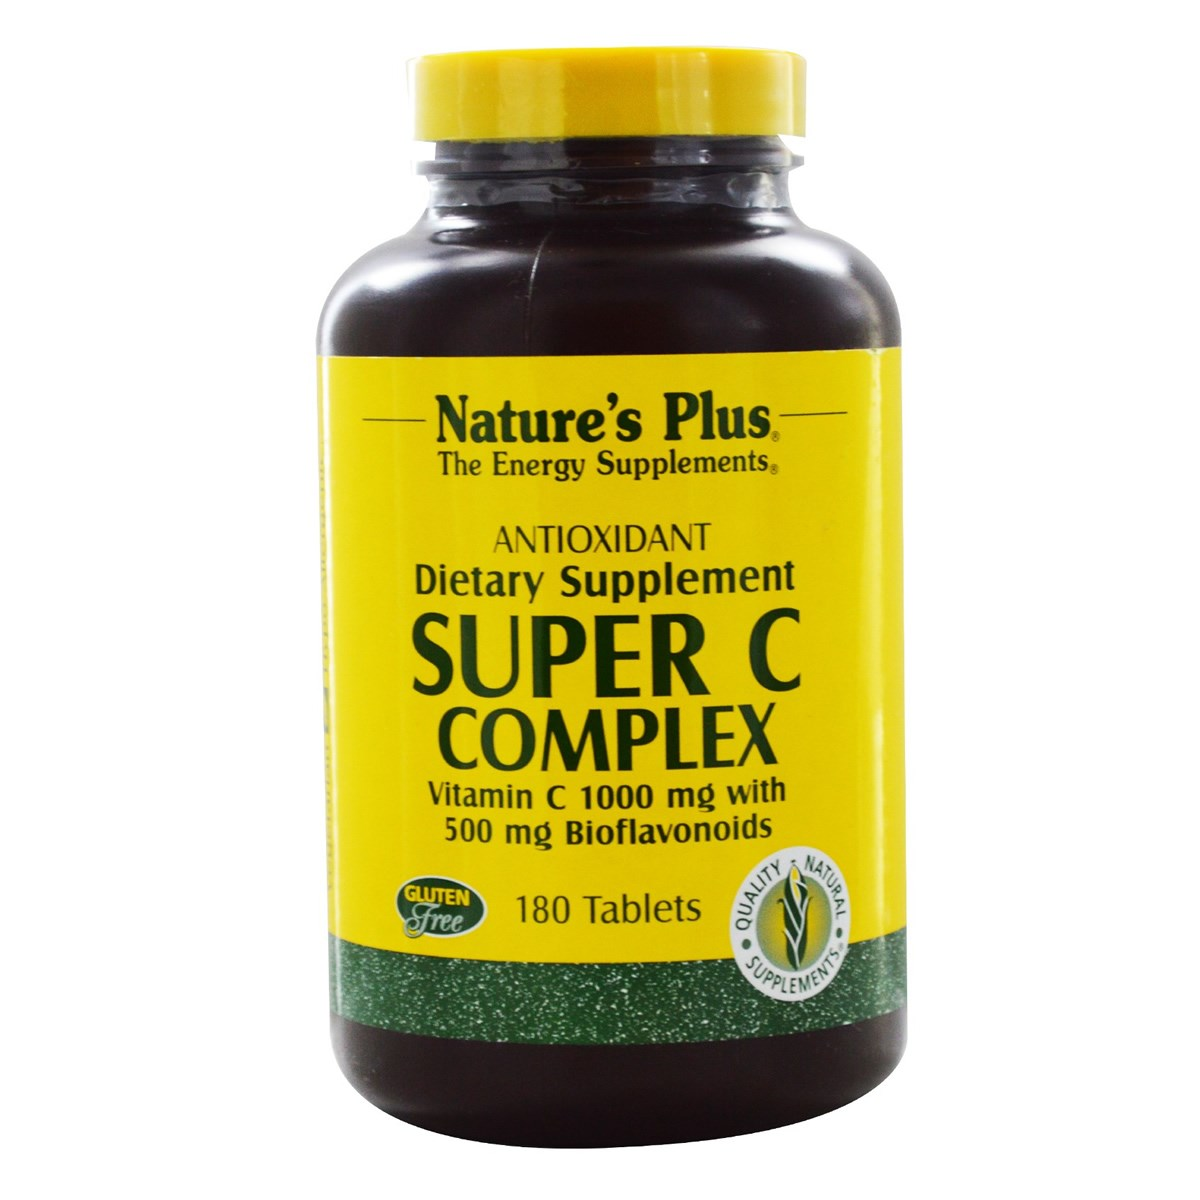 Natures Plus Super C Complex Vitamin C 1000mg with 500mg Bioflavonoids Sustained Release Tablets